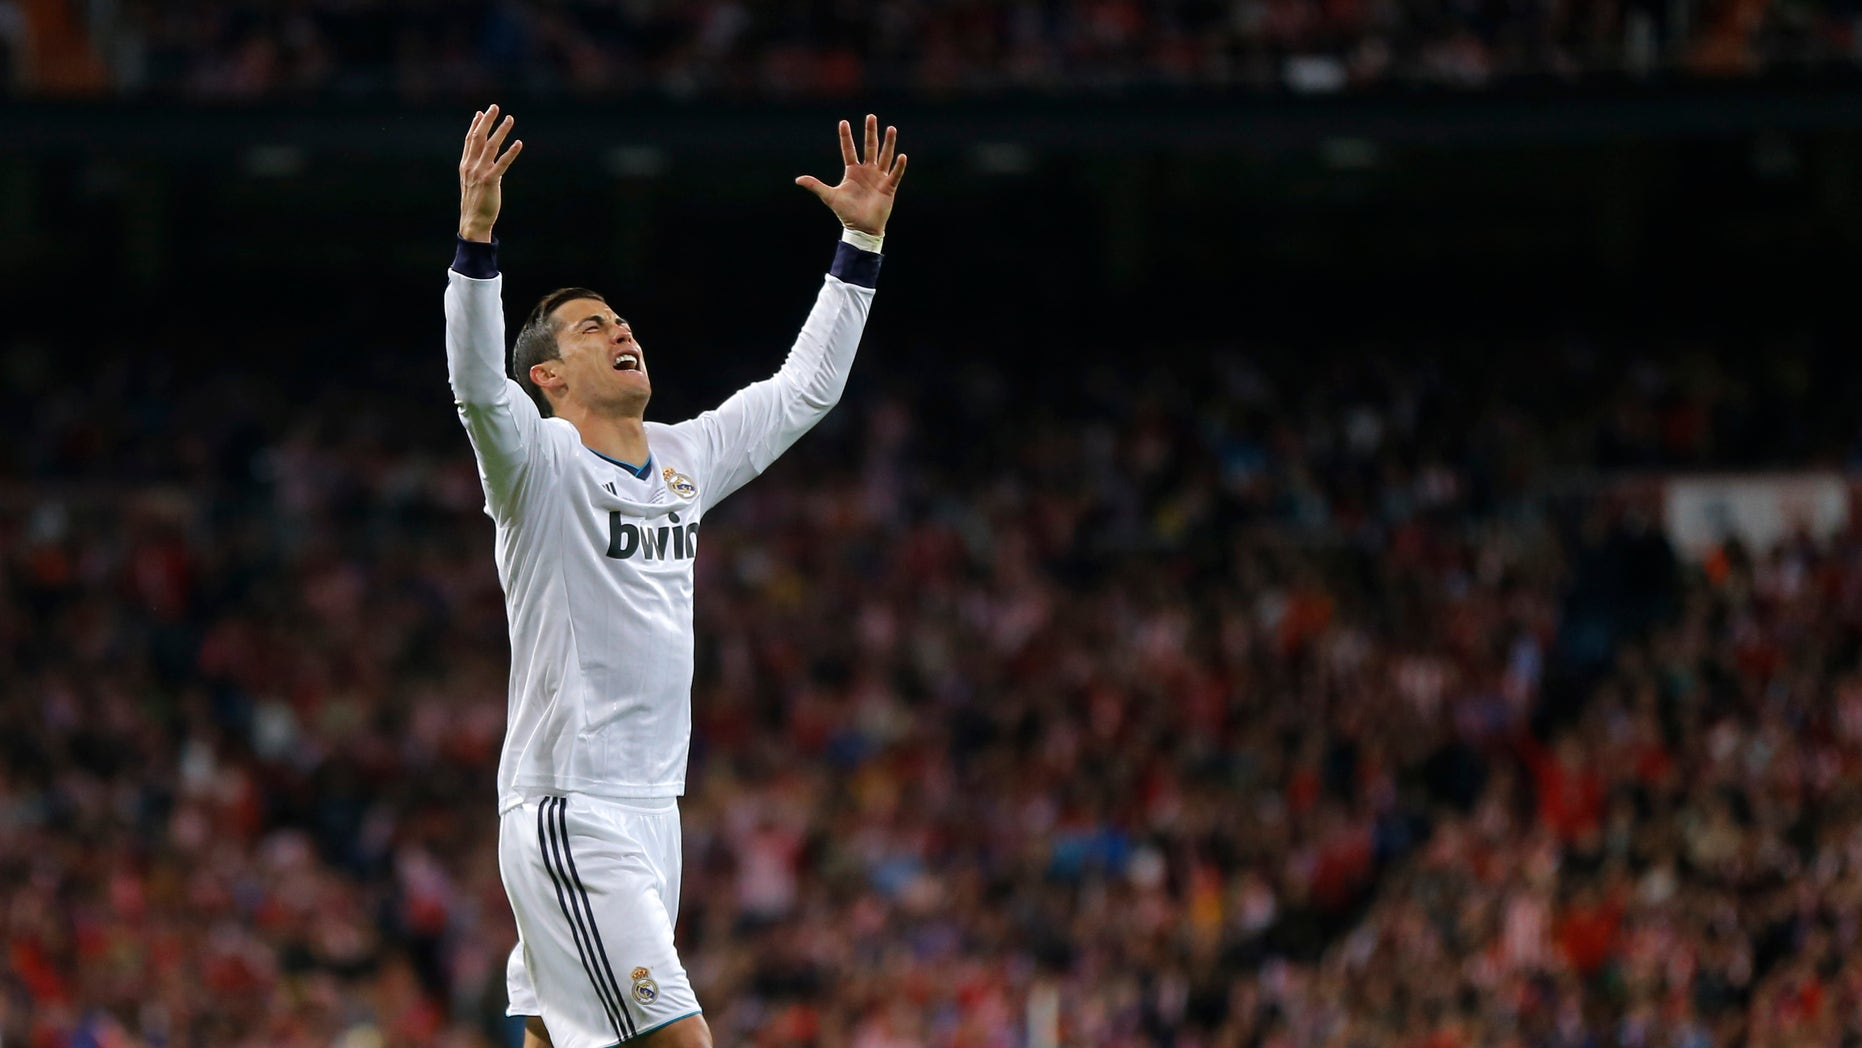 Real Madrid's Cristiano Ronaldo reacts during the Copa del Rey final soccer match between Atletico de Madrid and Real Madrid at the Santiago Bernabeu stadium in Madrid, Spain, Friday, May 17, 2013. (AP Photo/Daniel Ochoa de Olza)